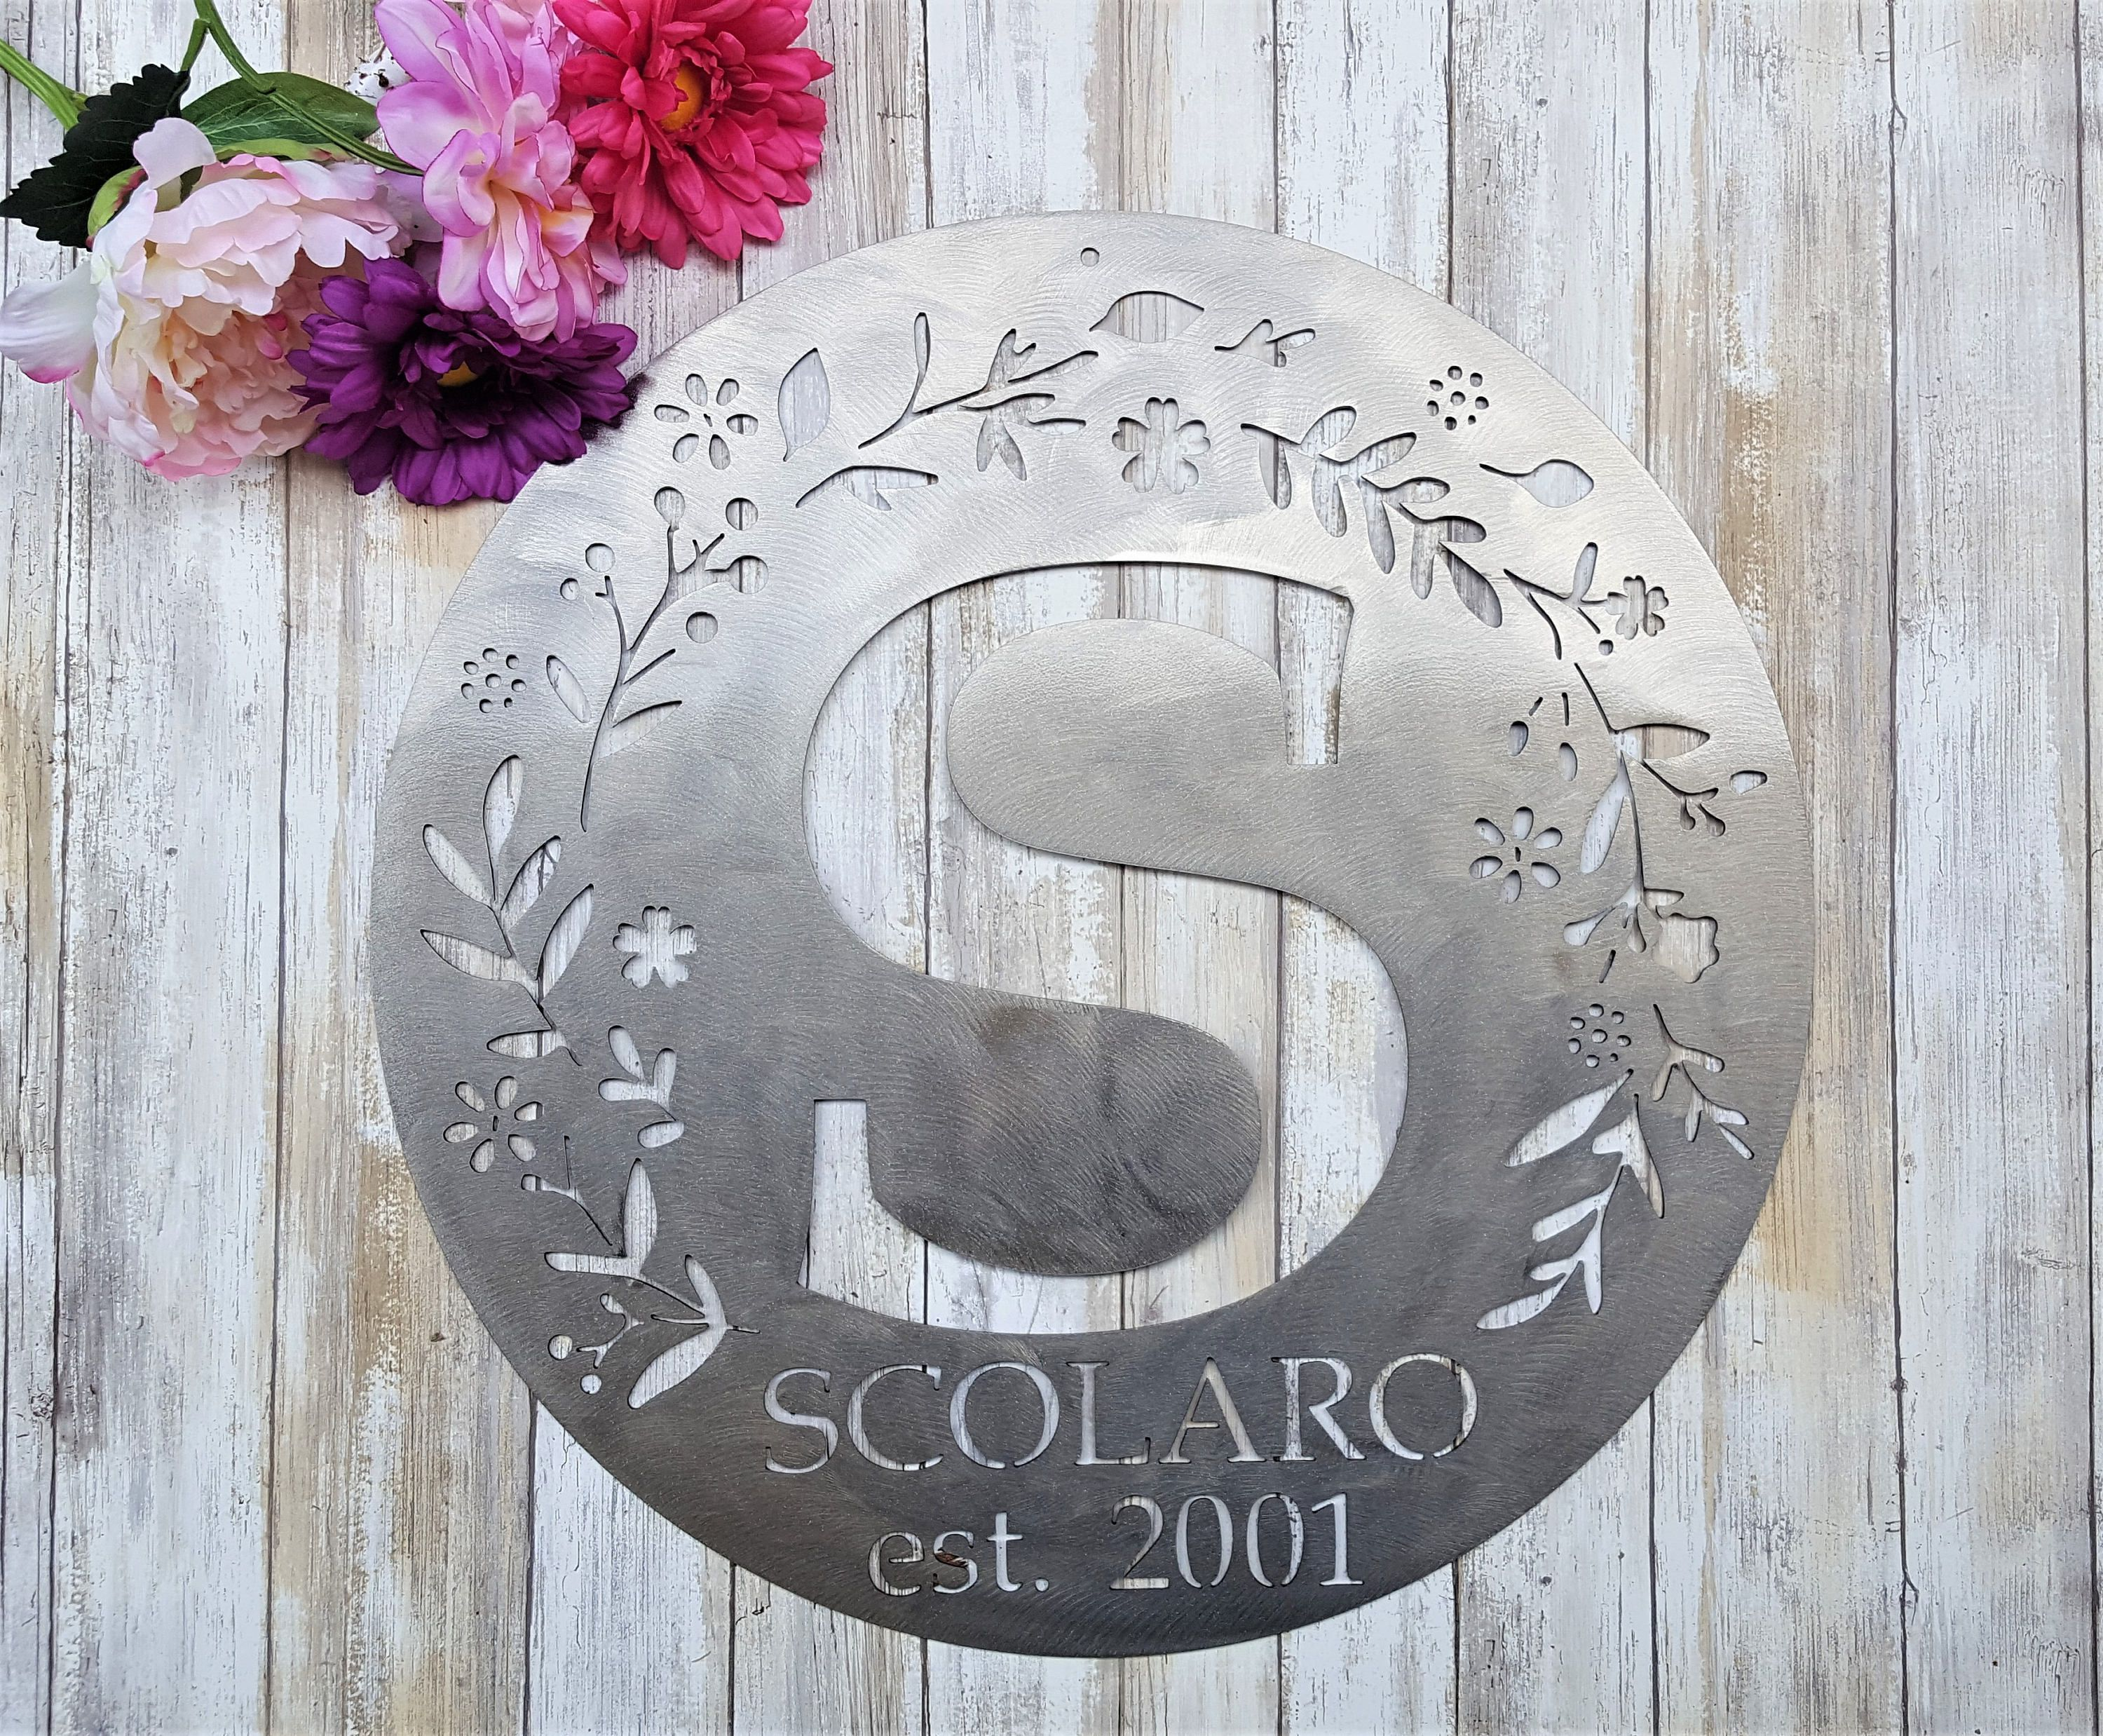 Outdoor Metal Monogram Letters Entrancing Monogram Wedding Gift Anniversary Letter Indoor Outdoor Decor Wall Inspiration